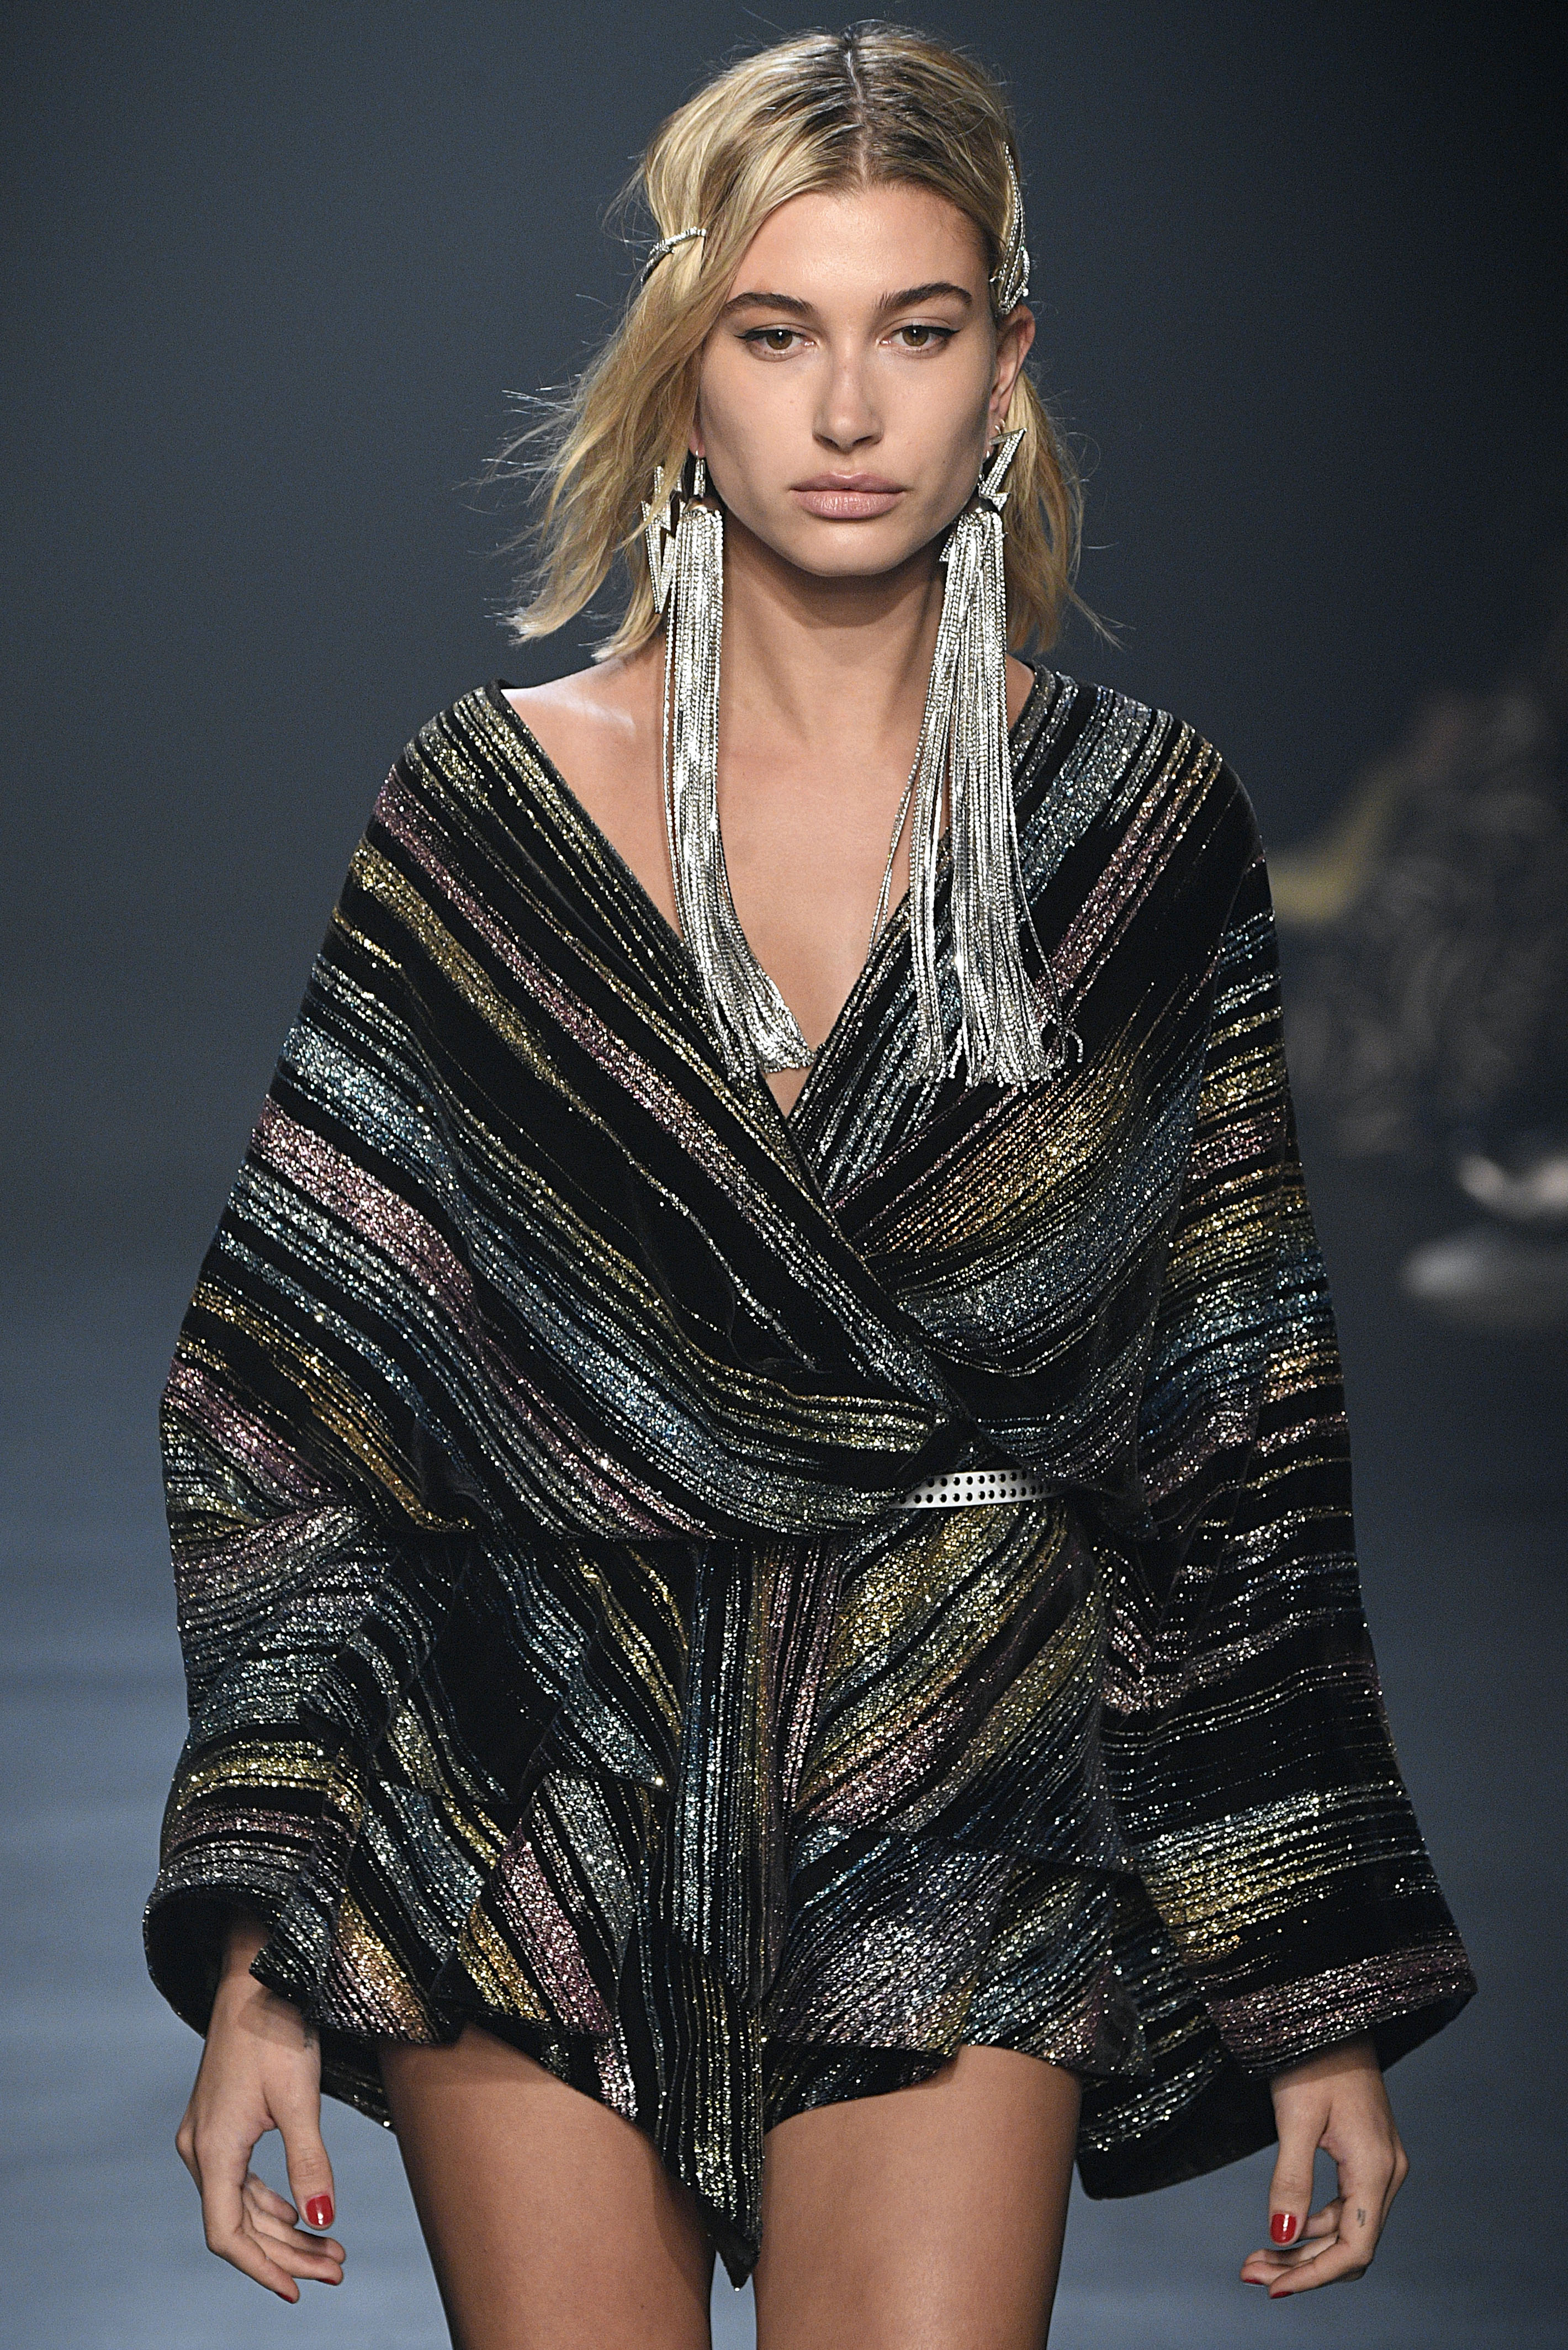 Zadig & Voltaire keeping it up with the oversized trend. Image: Courtesy Victor VIRGILE/Gamma-Rapho via Getty Images